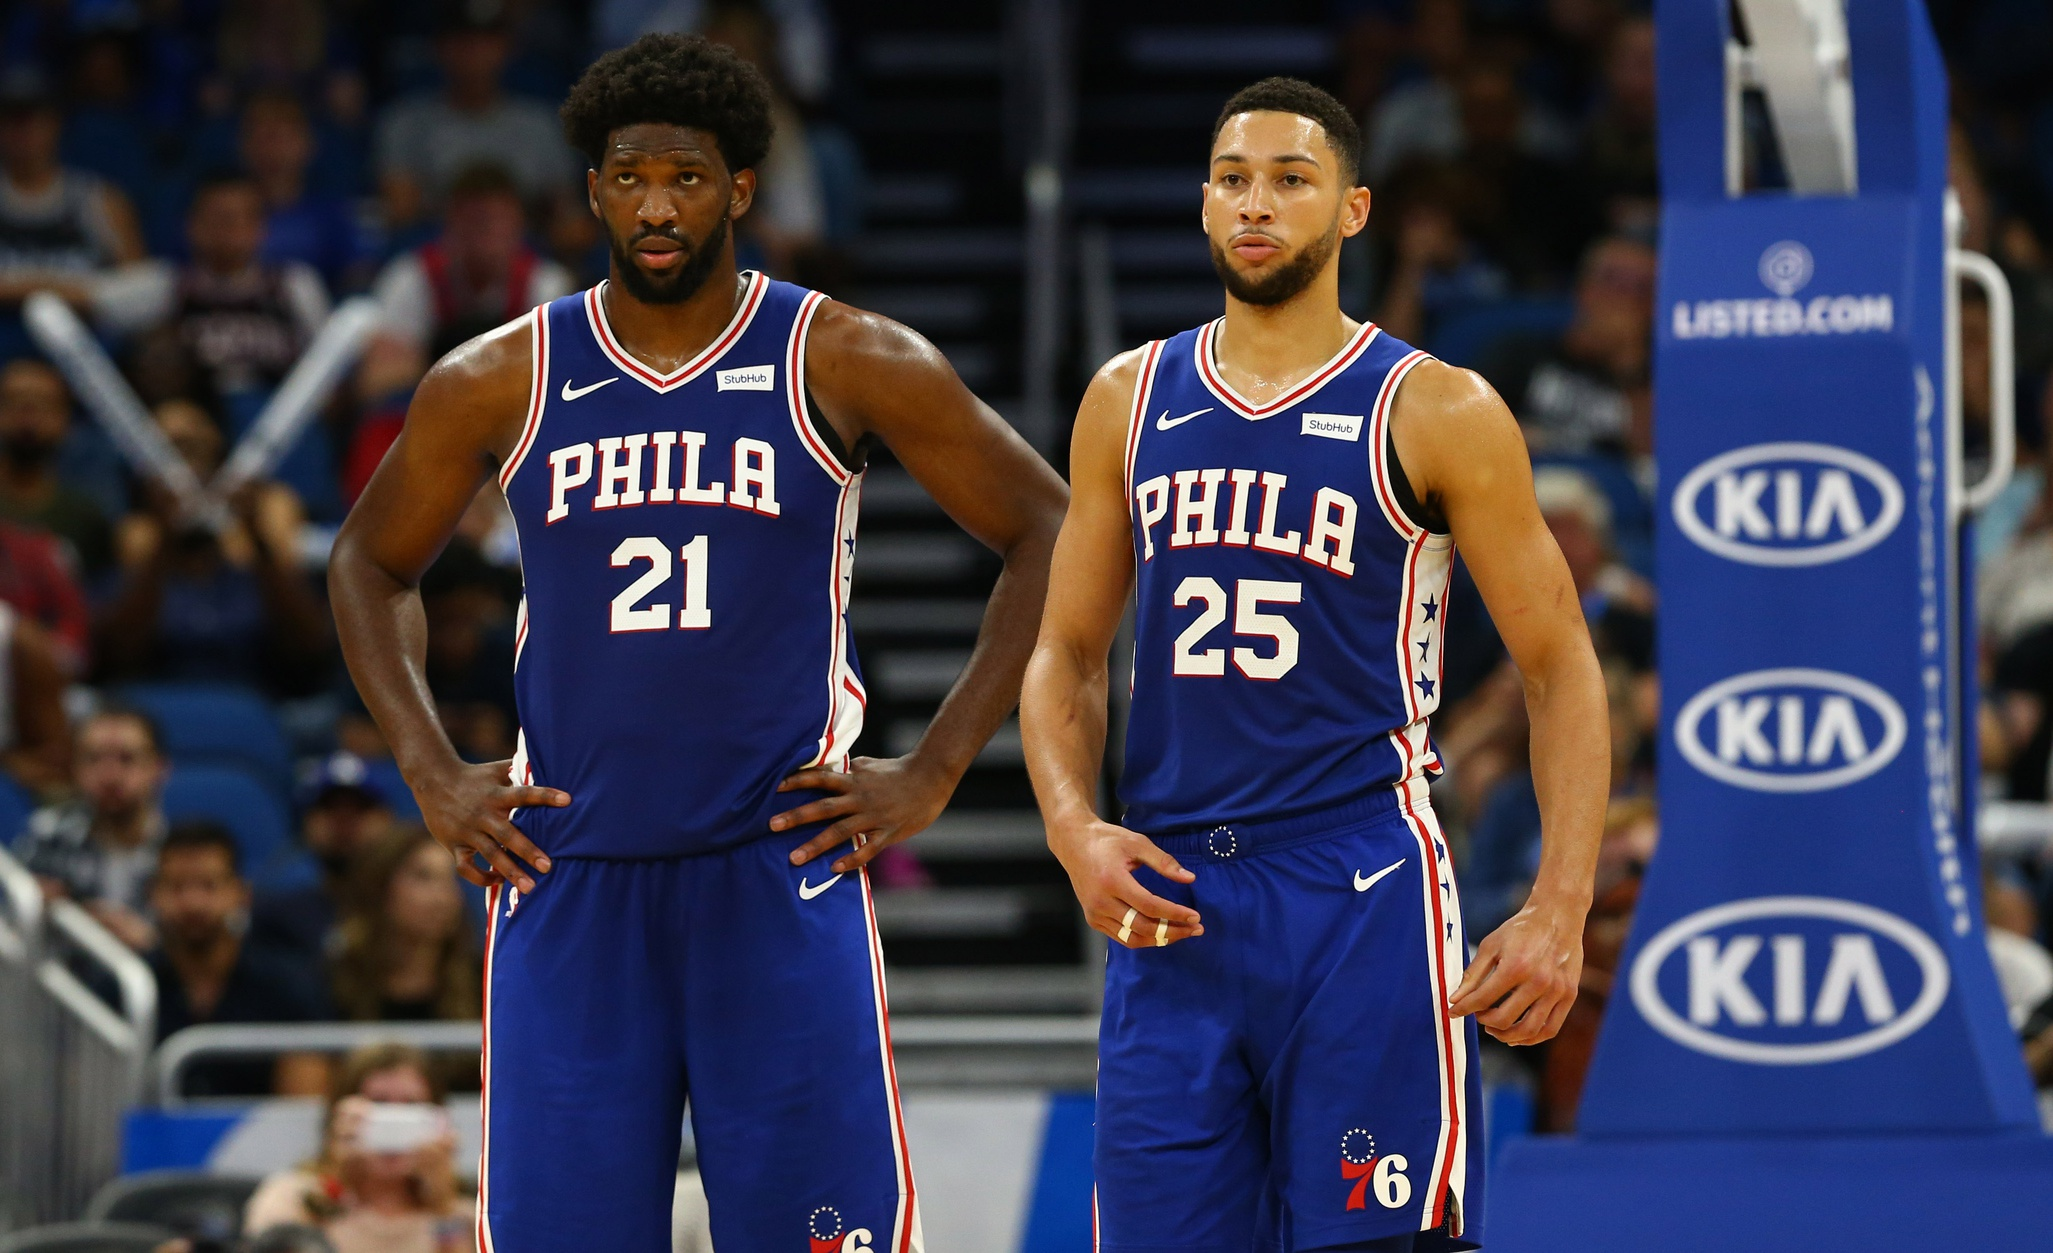 Joel Embiid and Ben Simmons